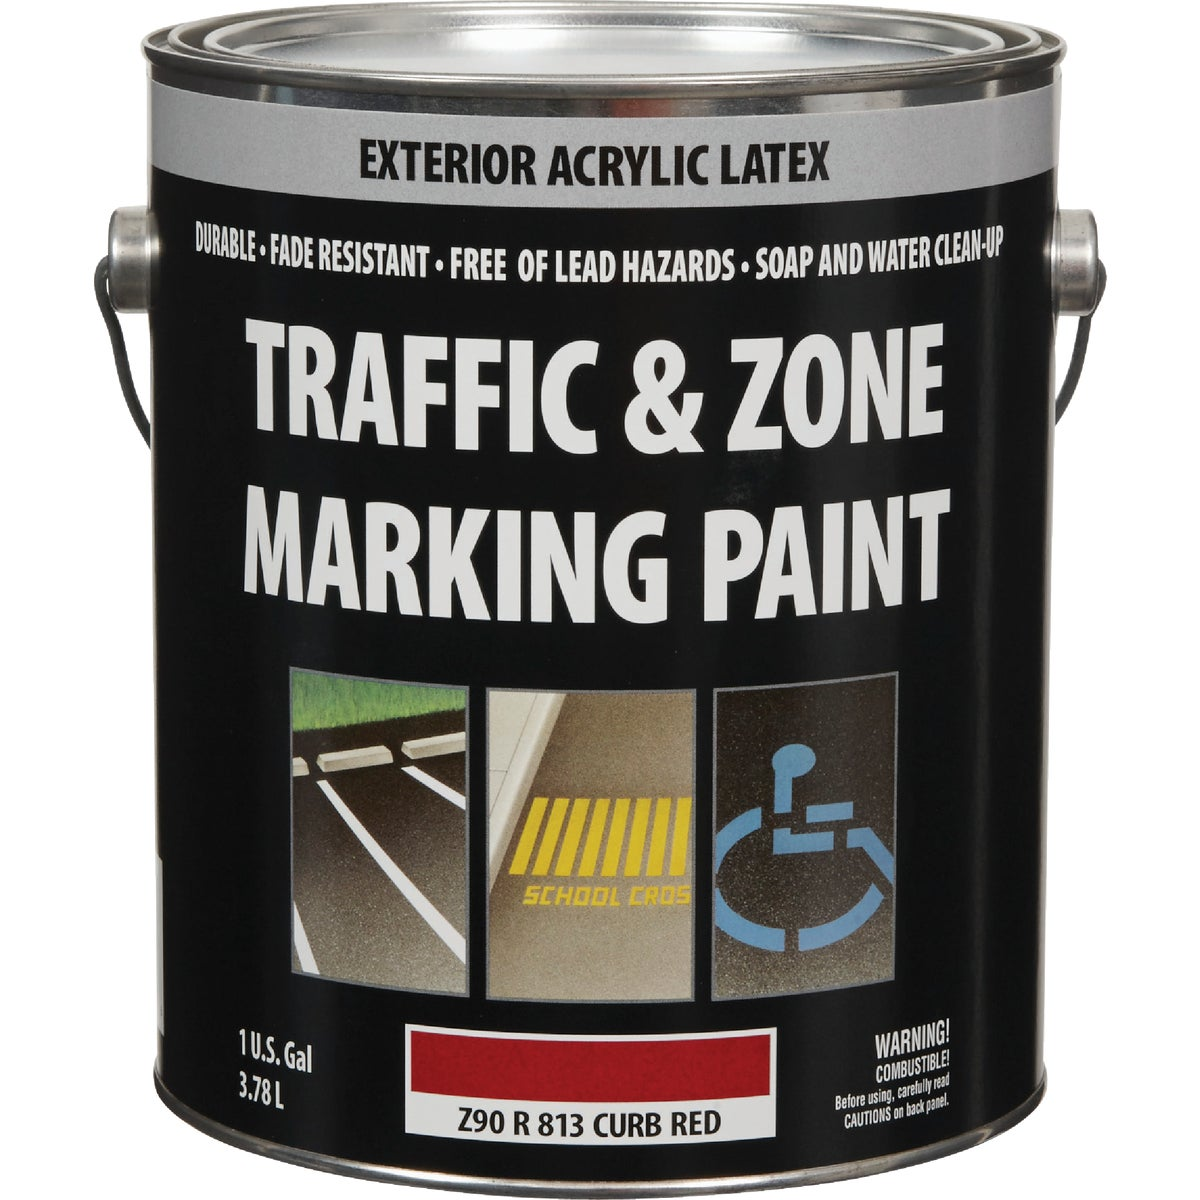 CURB RED LTX MARK PAINT - Z90R00813-16 by Do it Best